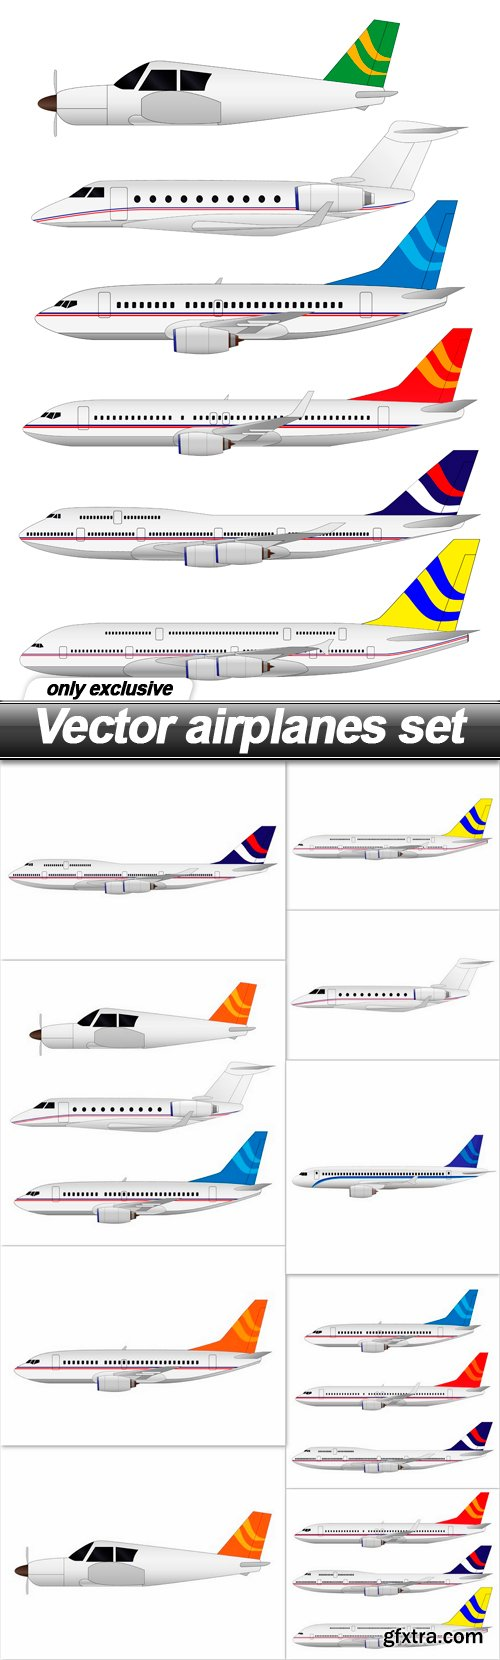 Vector airplanes set - 10 EPS